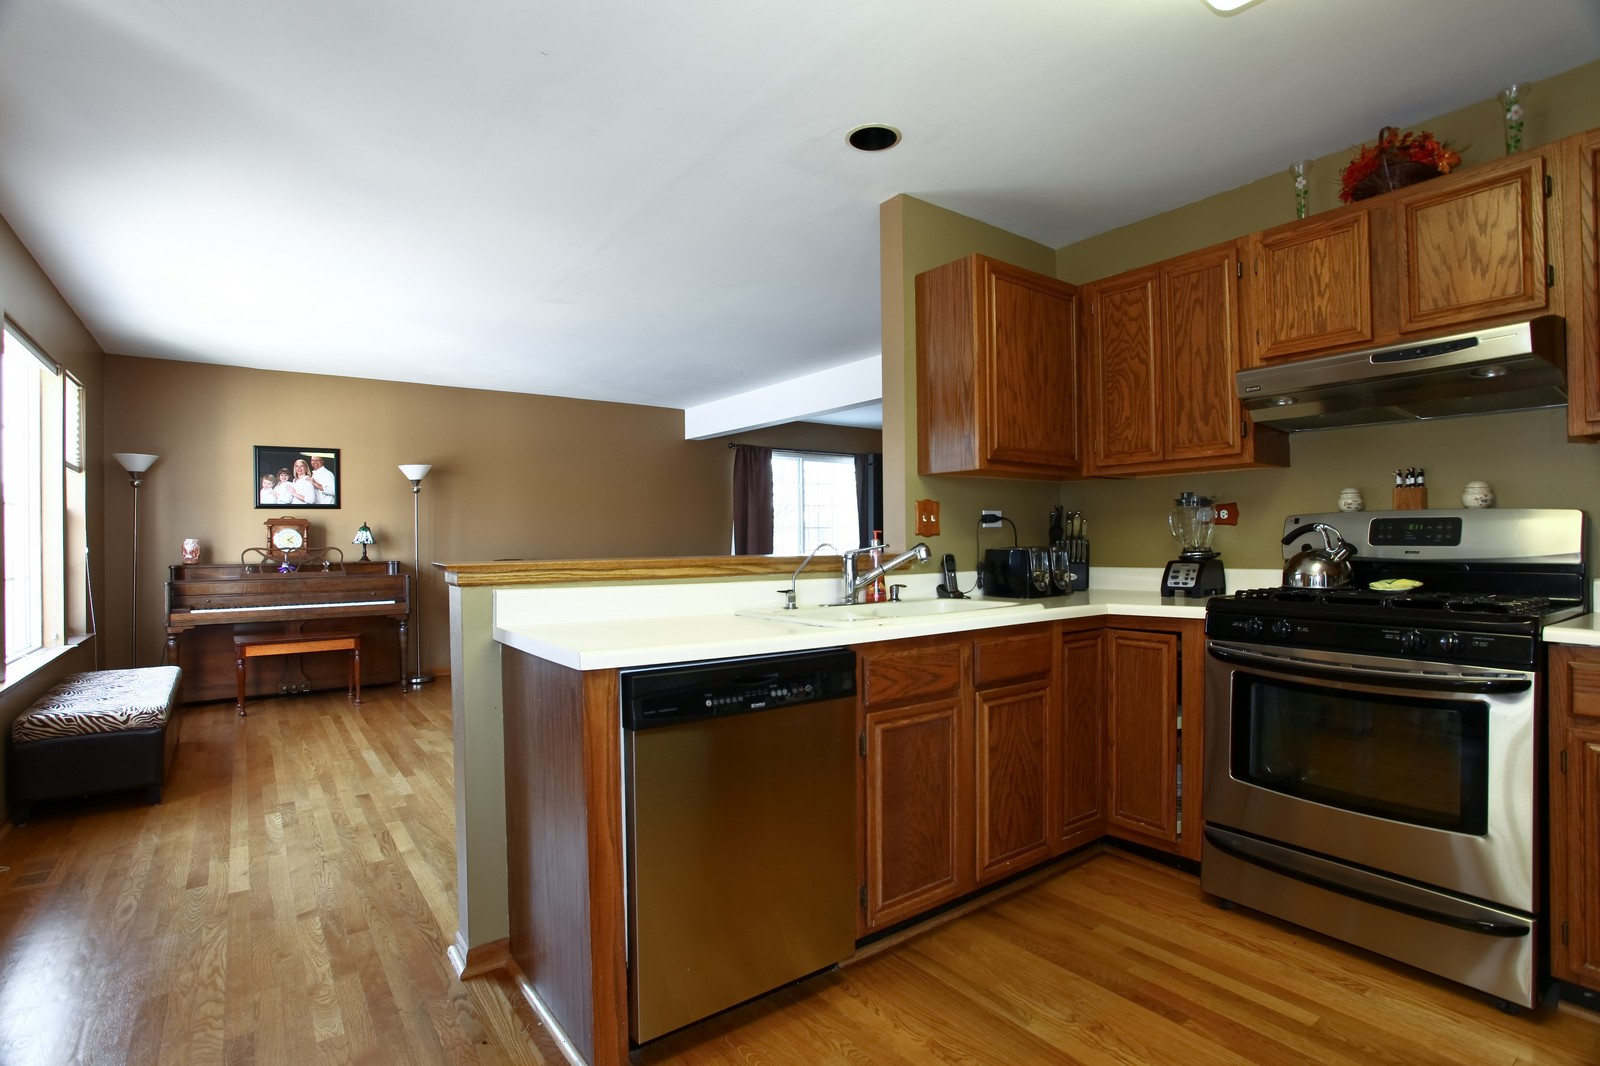 Real Estate Photography - 1383 Newcastle Lane, Bartlett, IL, 60103 - Kitchen